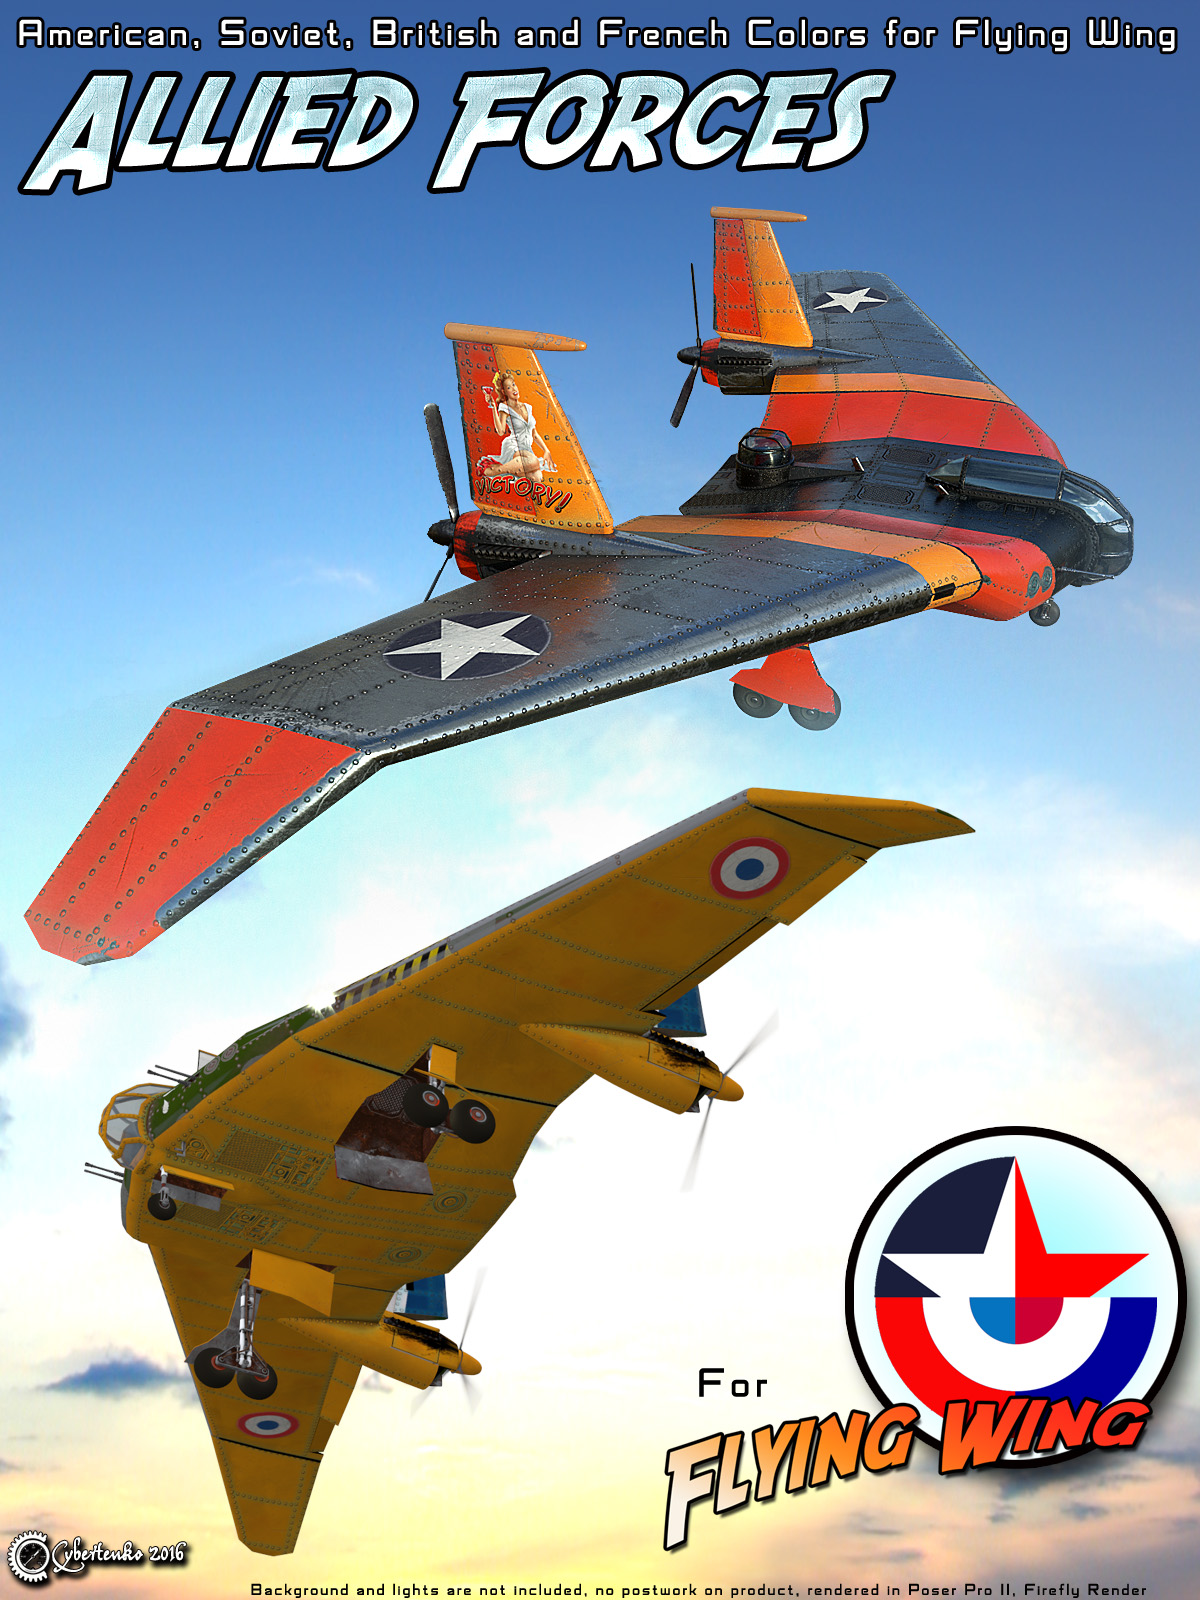 Allied Forces for Flying Wing